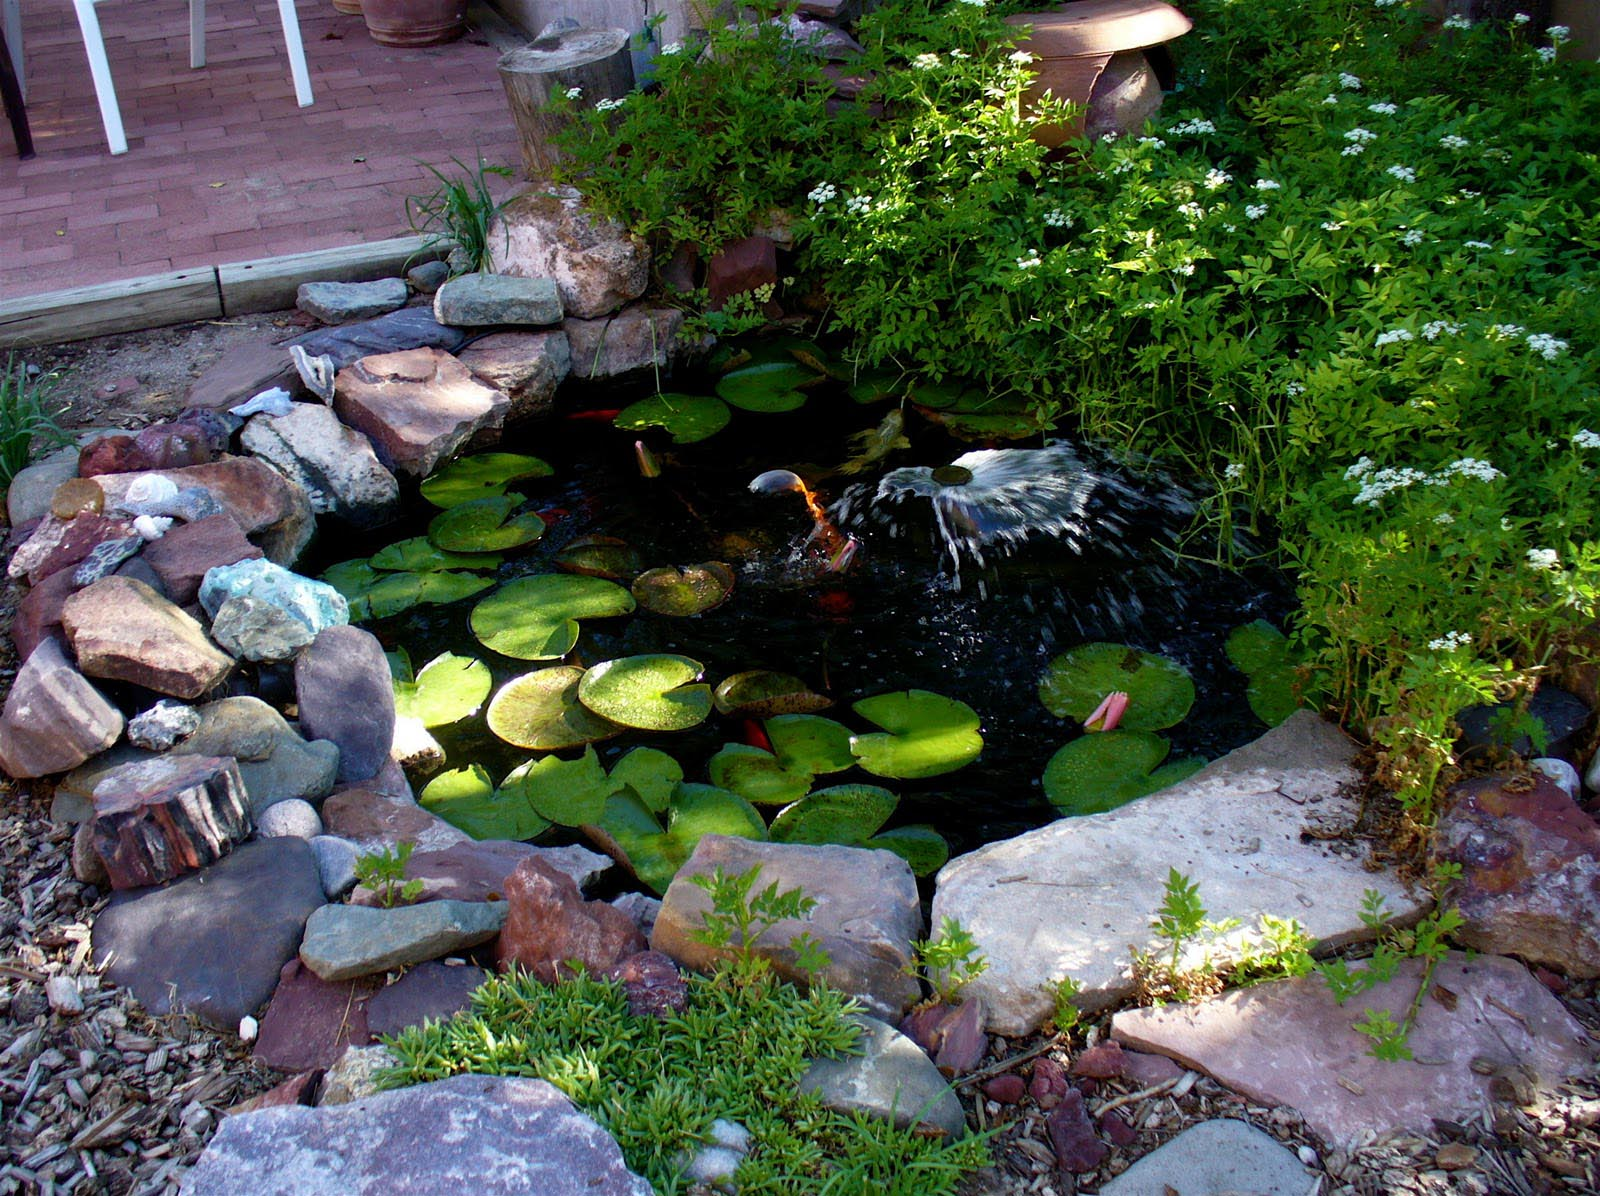 Garden fish pond ideas backyard design ideas for Backyard koi pond designs